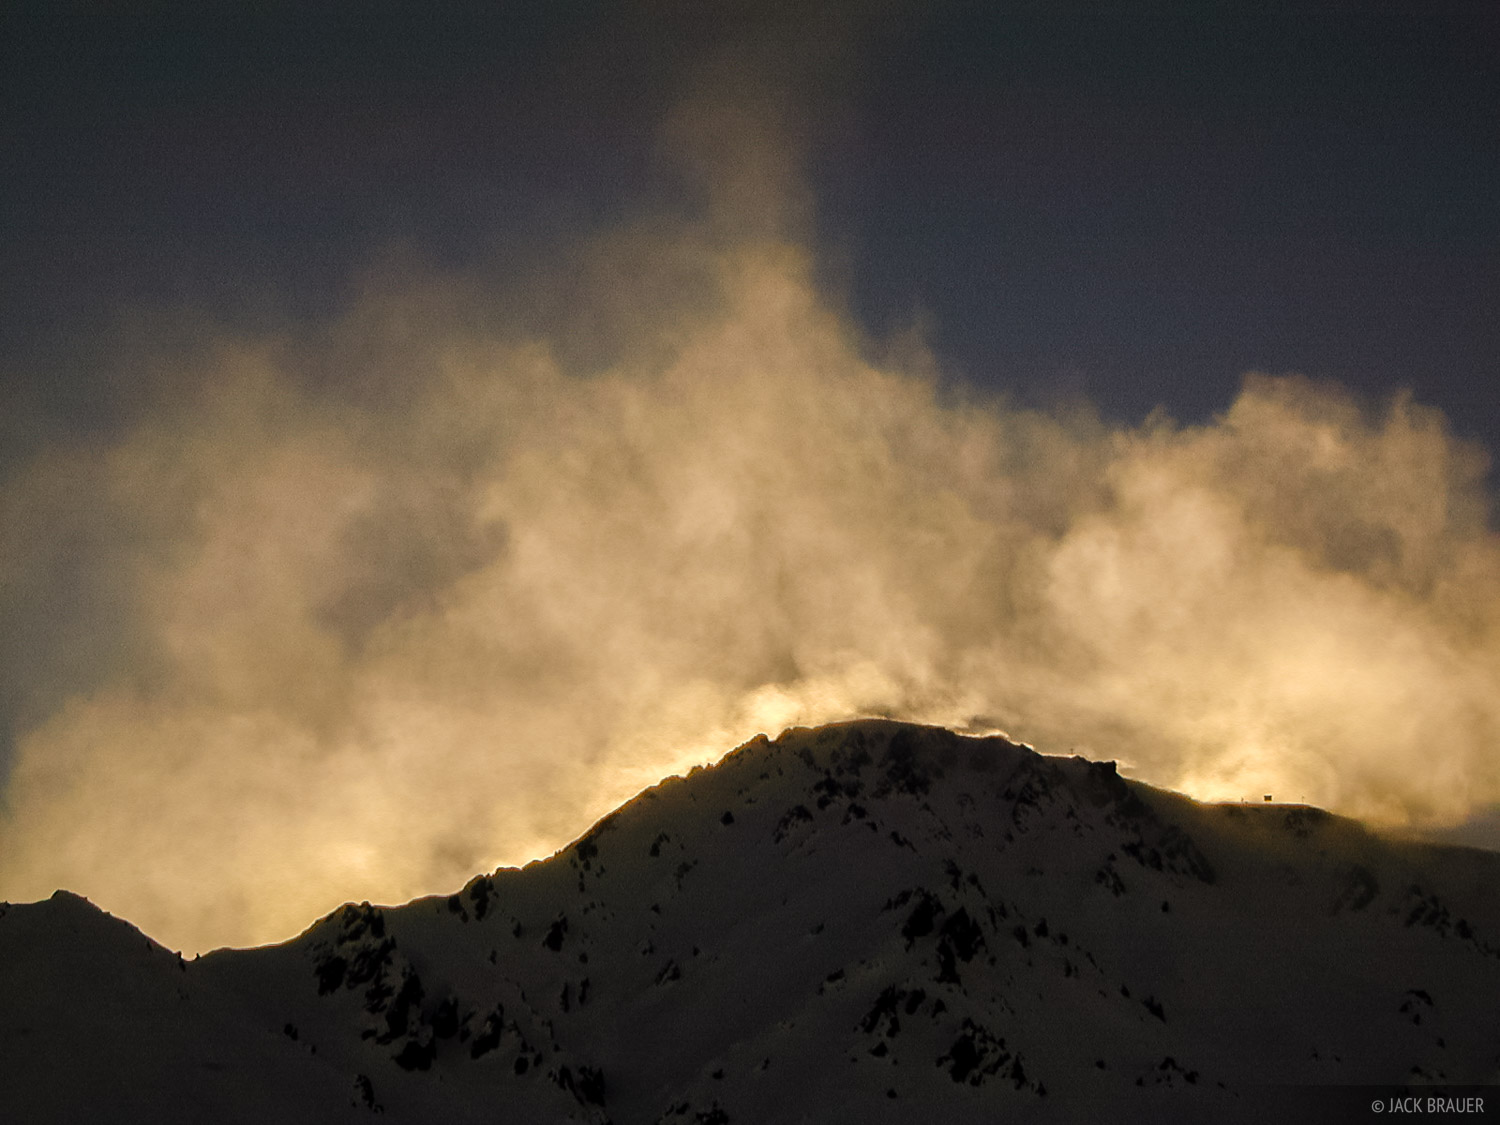 powder clouds, Las Le, Las Leñas, Argentina, Las Leñas, photo